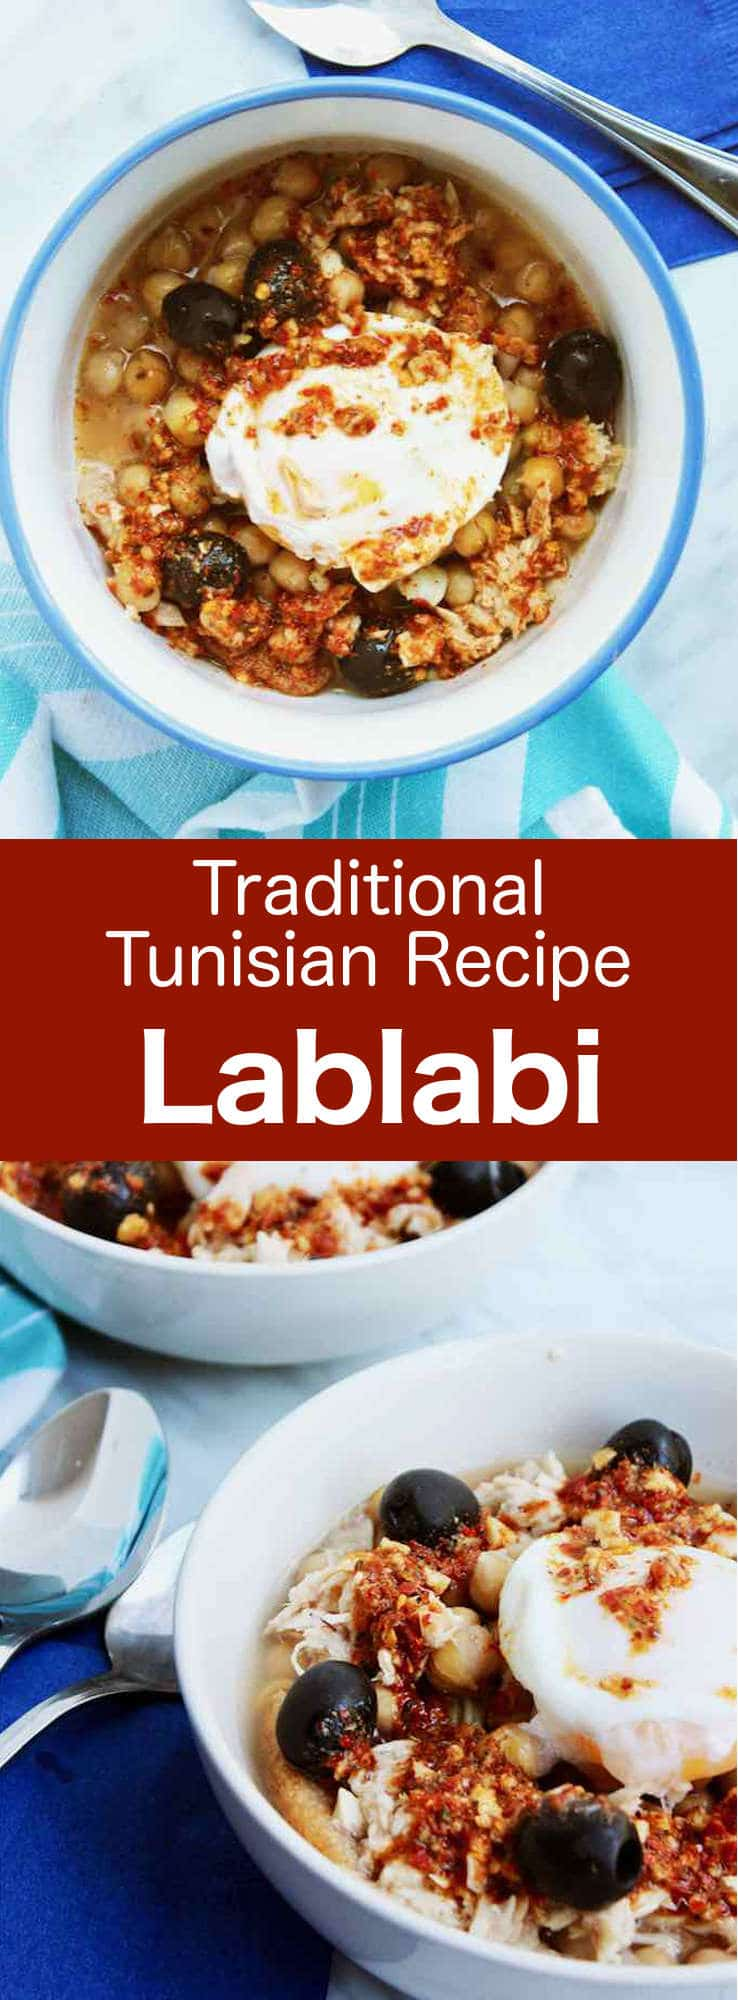 Lablabi (or lablebi) is a Tunisian soup, traditionally eaten for breakfast, that consists in chickpeas in a flavored thin soup, served over pieces of stale bread. It is often topped with a poached egg and tuna. #Tunisia #Tunisian #TunisianCuisine #TunisianRecipe #NorthAfricanCuisine #NorthAfricanRecipe #NorthAfrica #Maghreb #MaghrebCuisine #WorldCuisine #196flavors